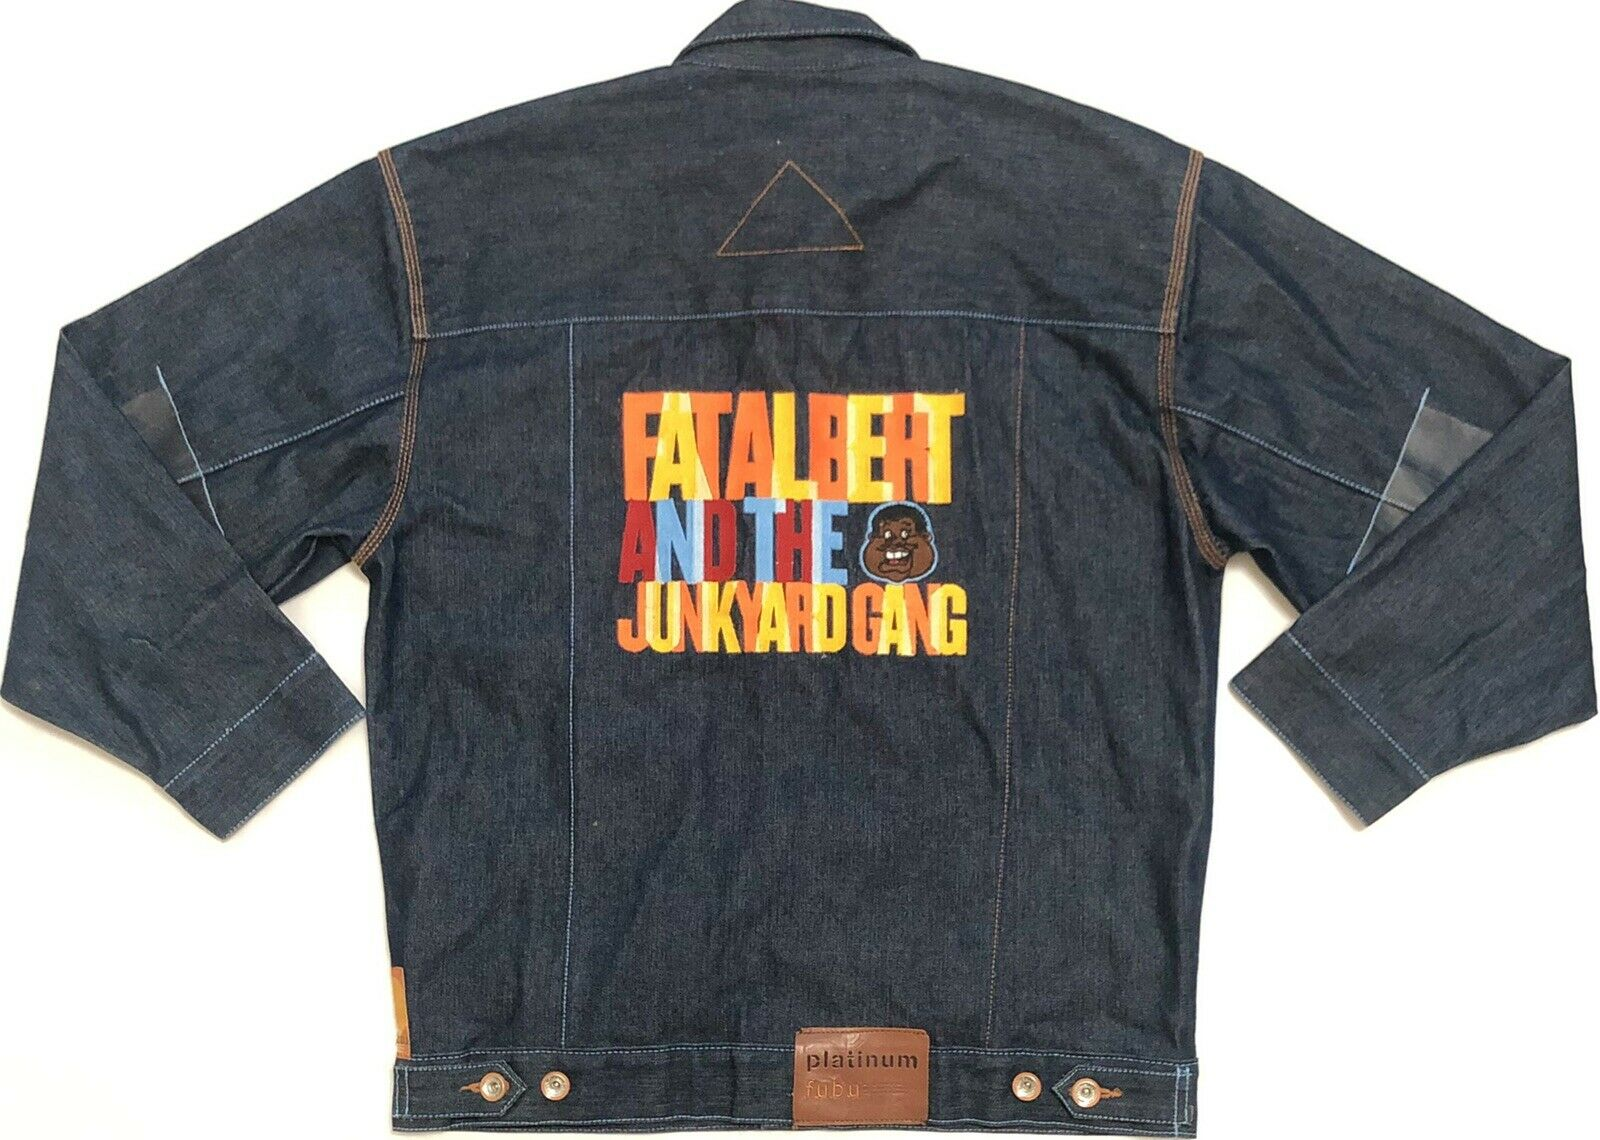 3ad0346a7ae Vtg Fat Albert And The Junkyard Mens Denim Fubu Platinum Sz Large By Shirt  nyvyib1974-Casual Button-Down Shirts